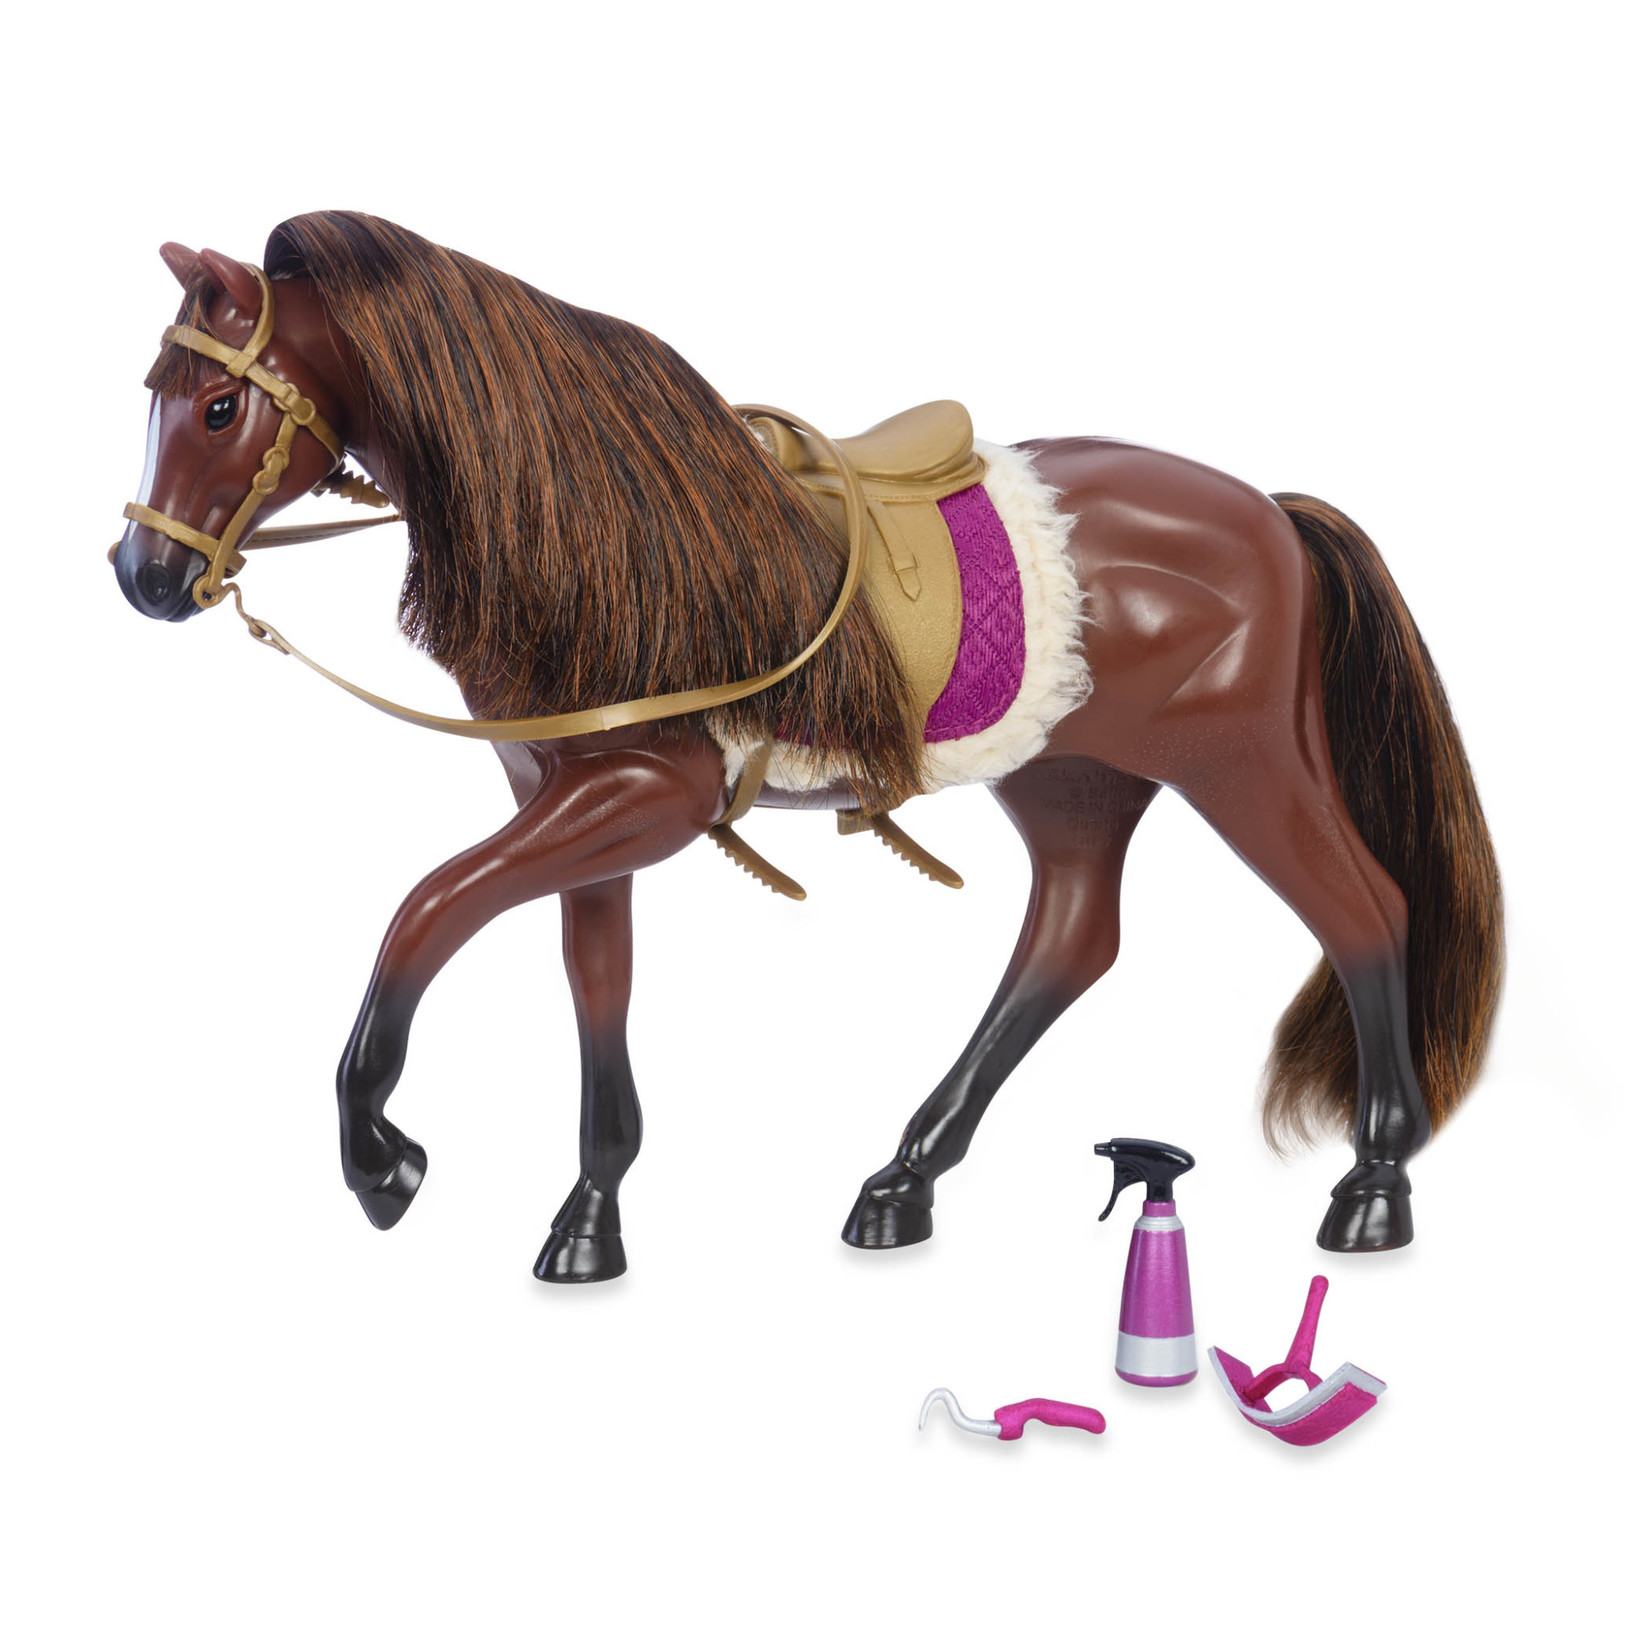 Lori Doll Horse with Accessories - American Quarter Brown